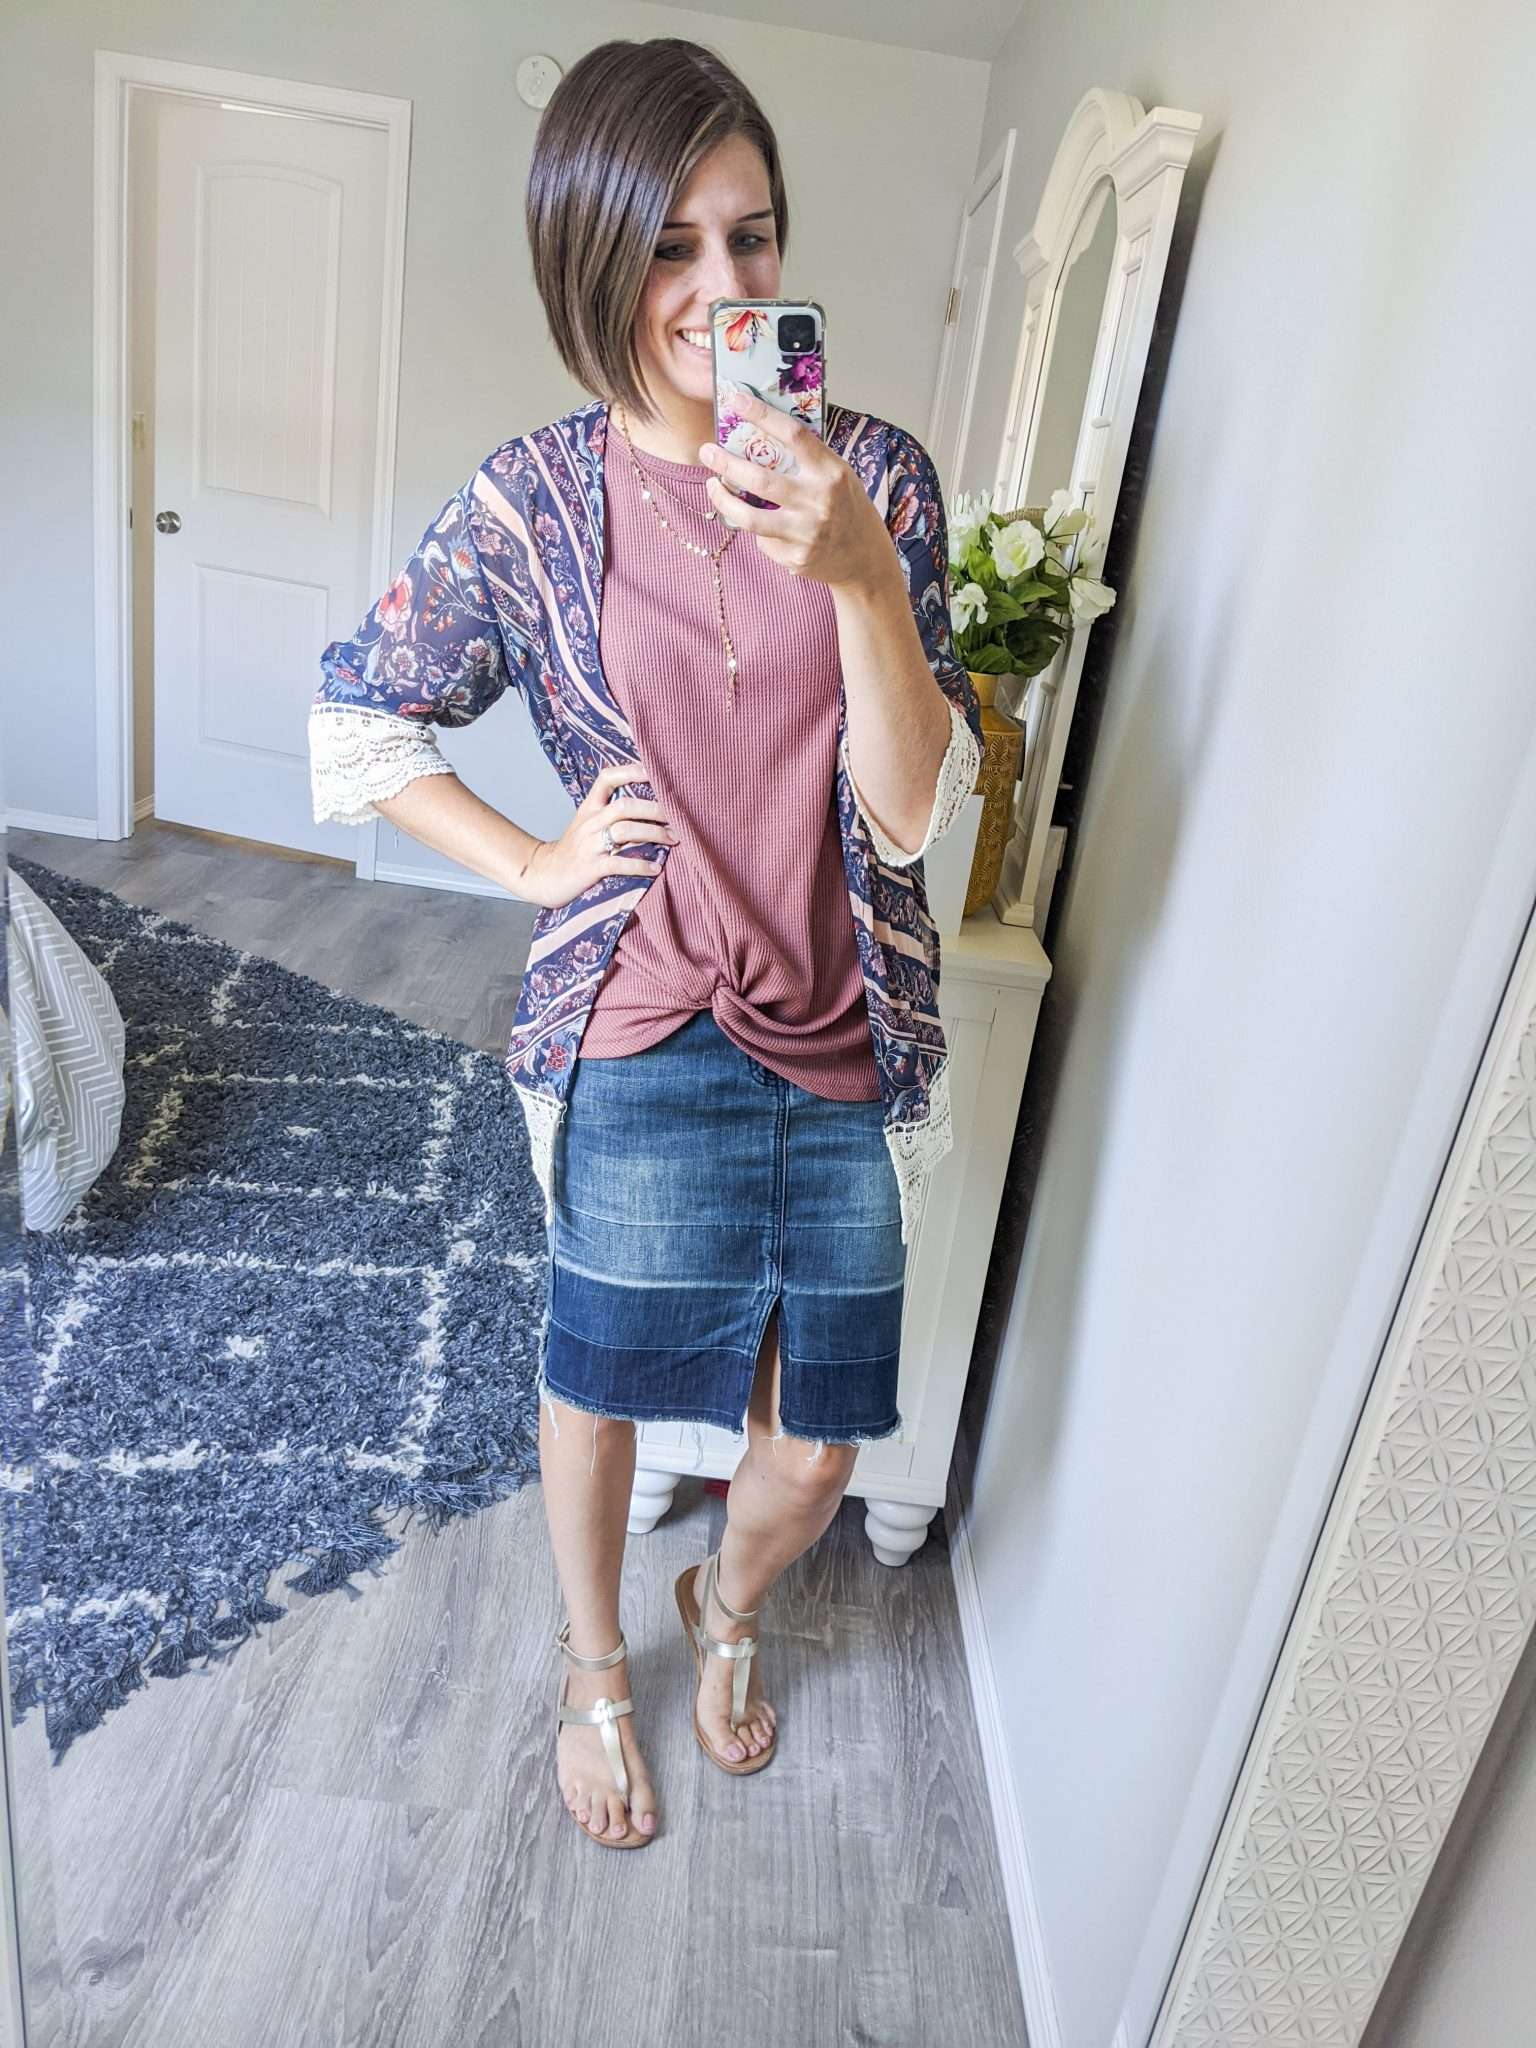 Summer to Fall transition outfits - How to transition summer clothes to fall - Add a kimono for warmth in the morning